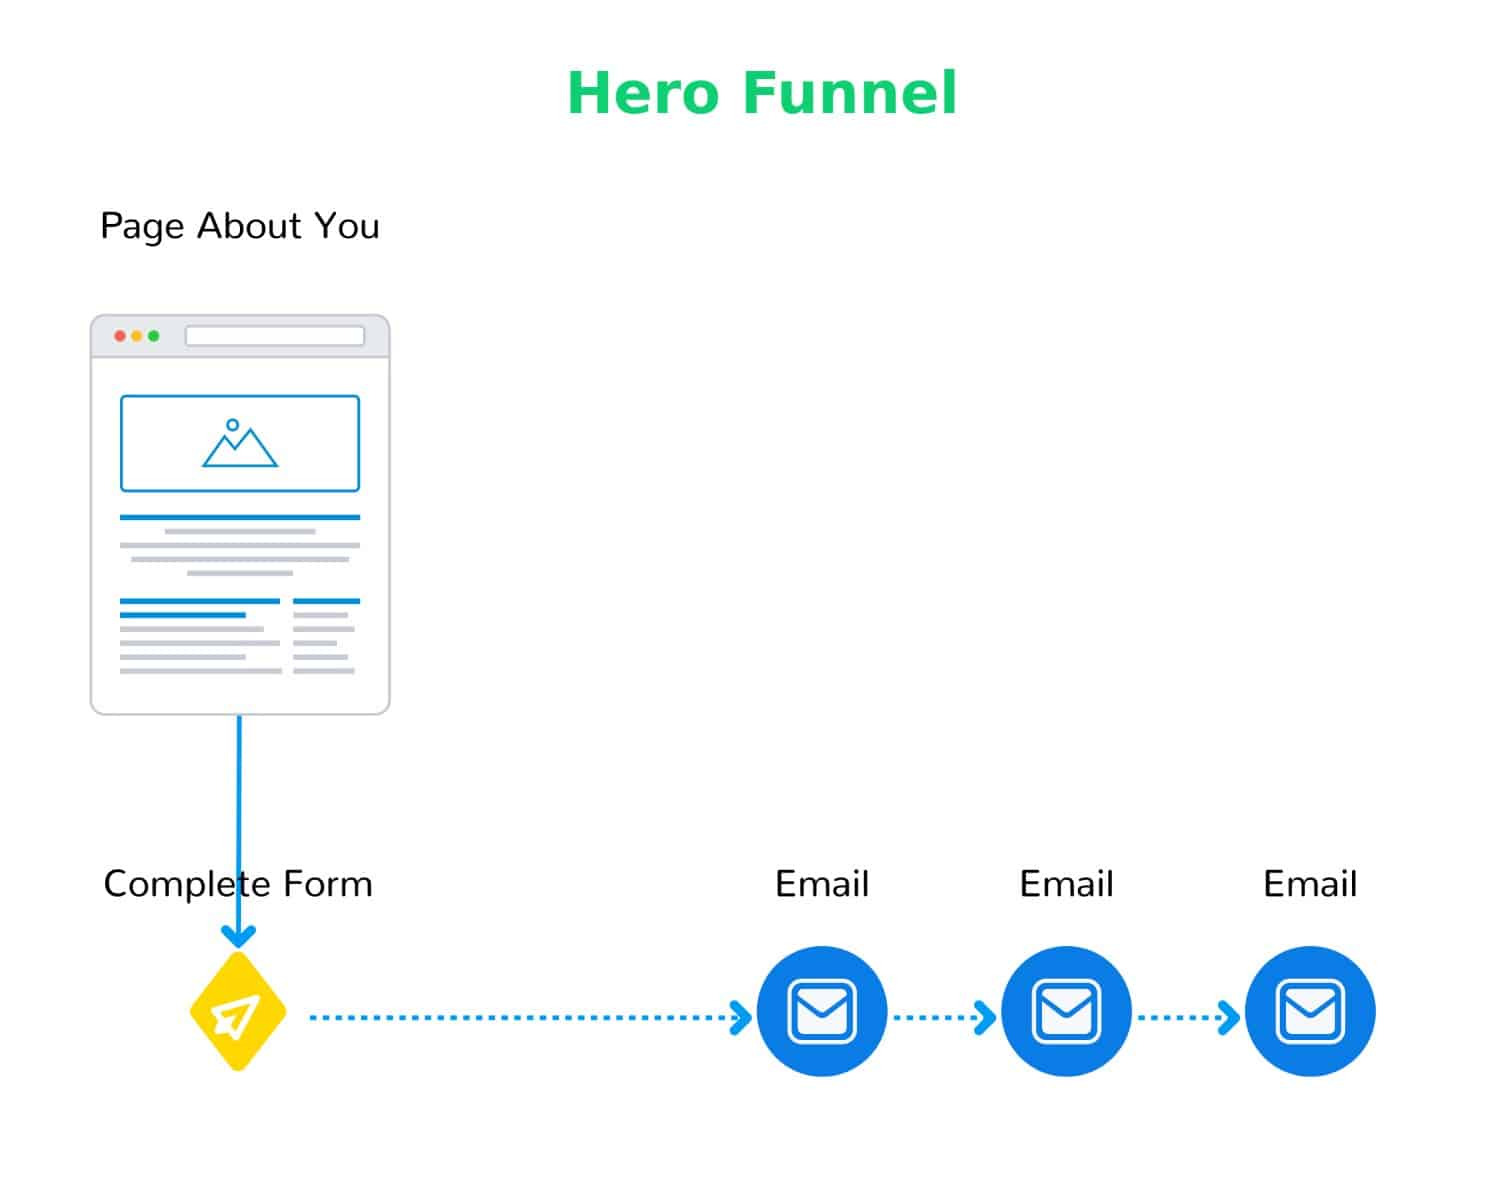 Hero Funnel